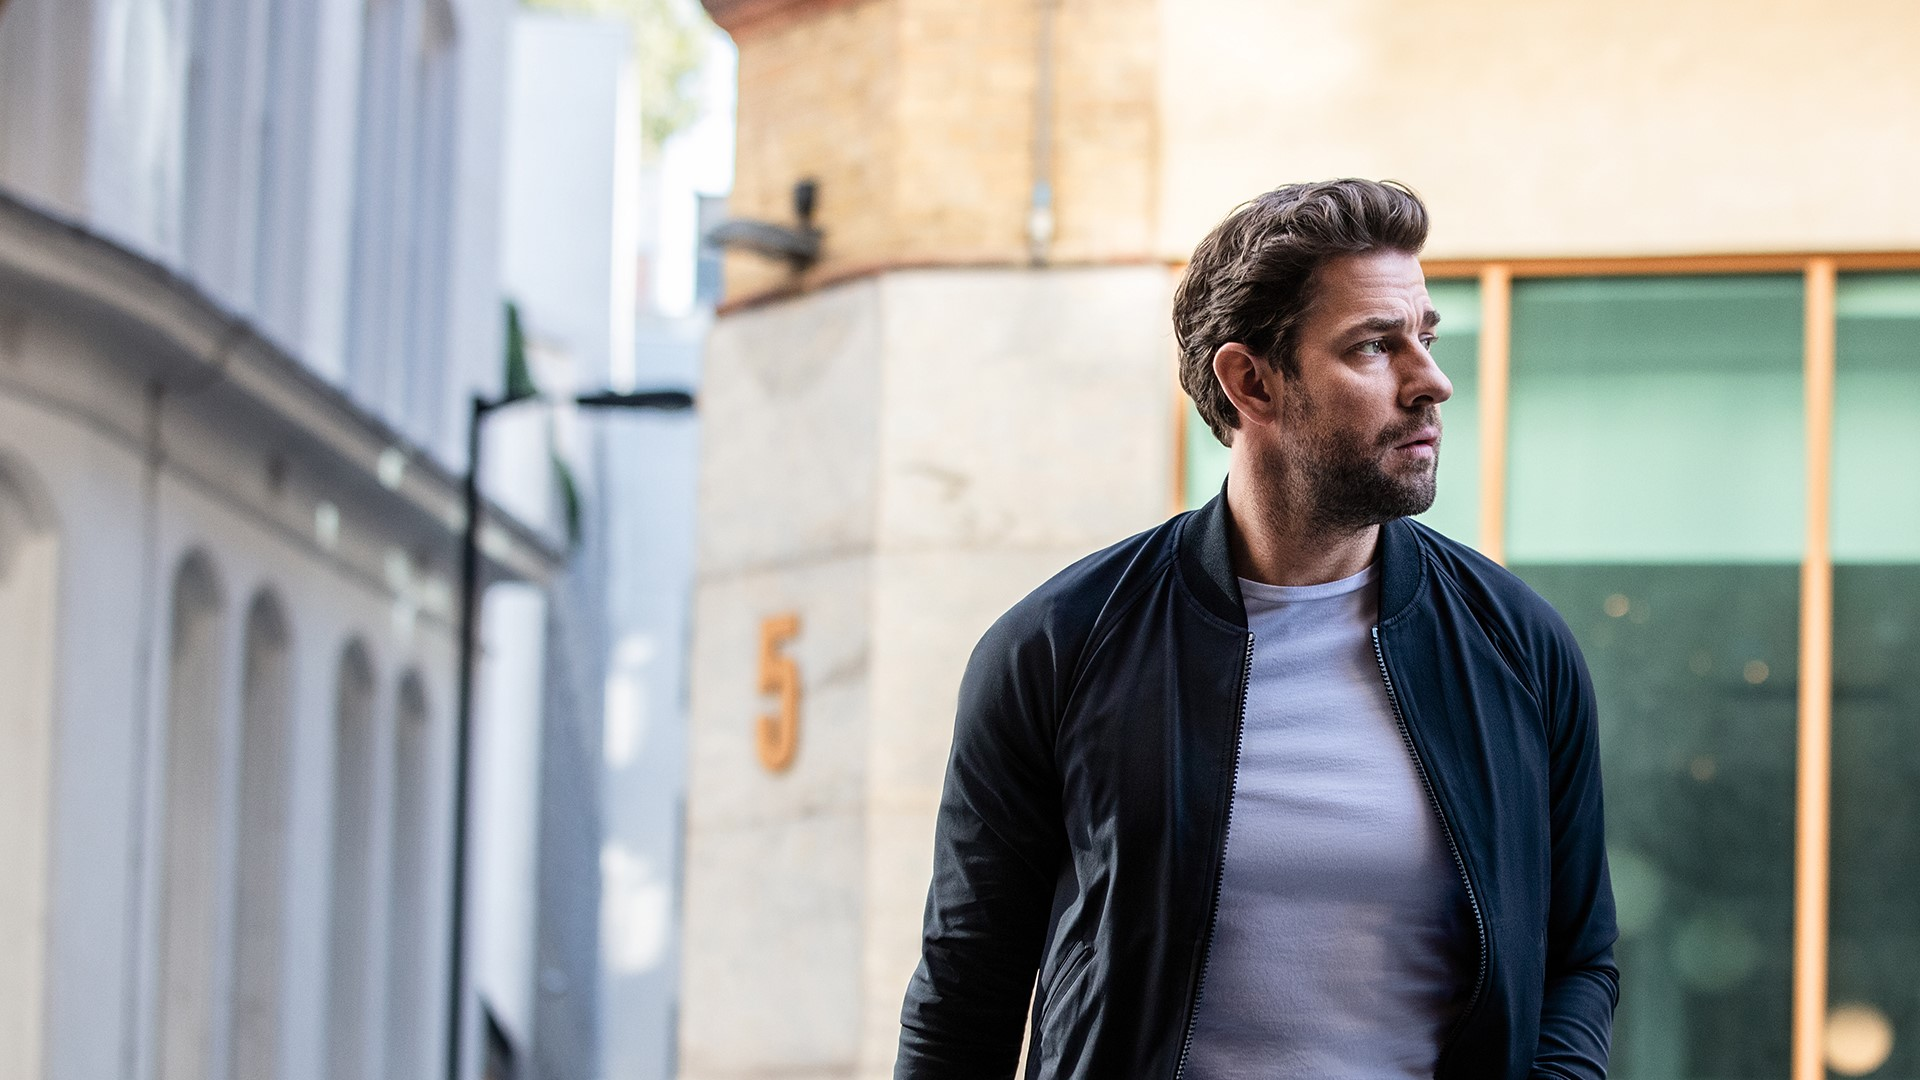 Jack Ryan Season 3 Release Date, Cast, Story, News, and More - Den of Geek